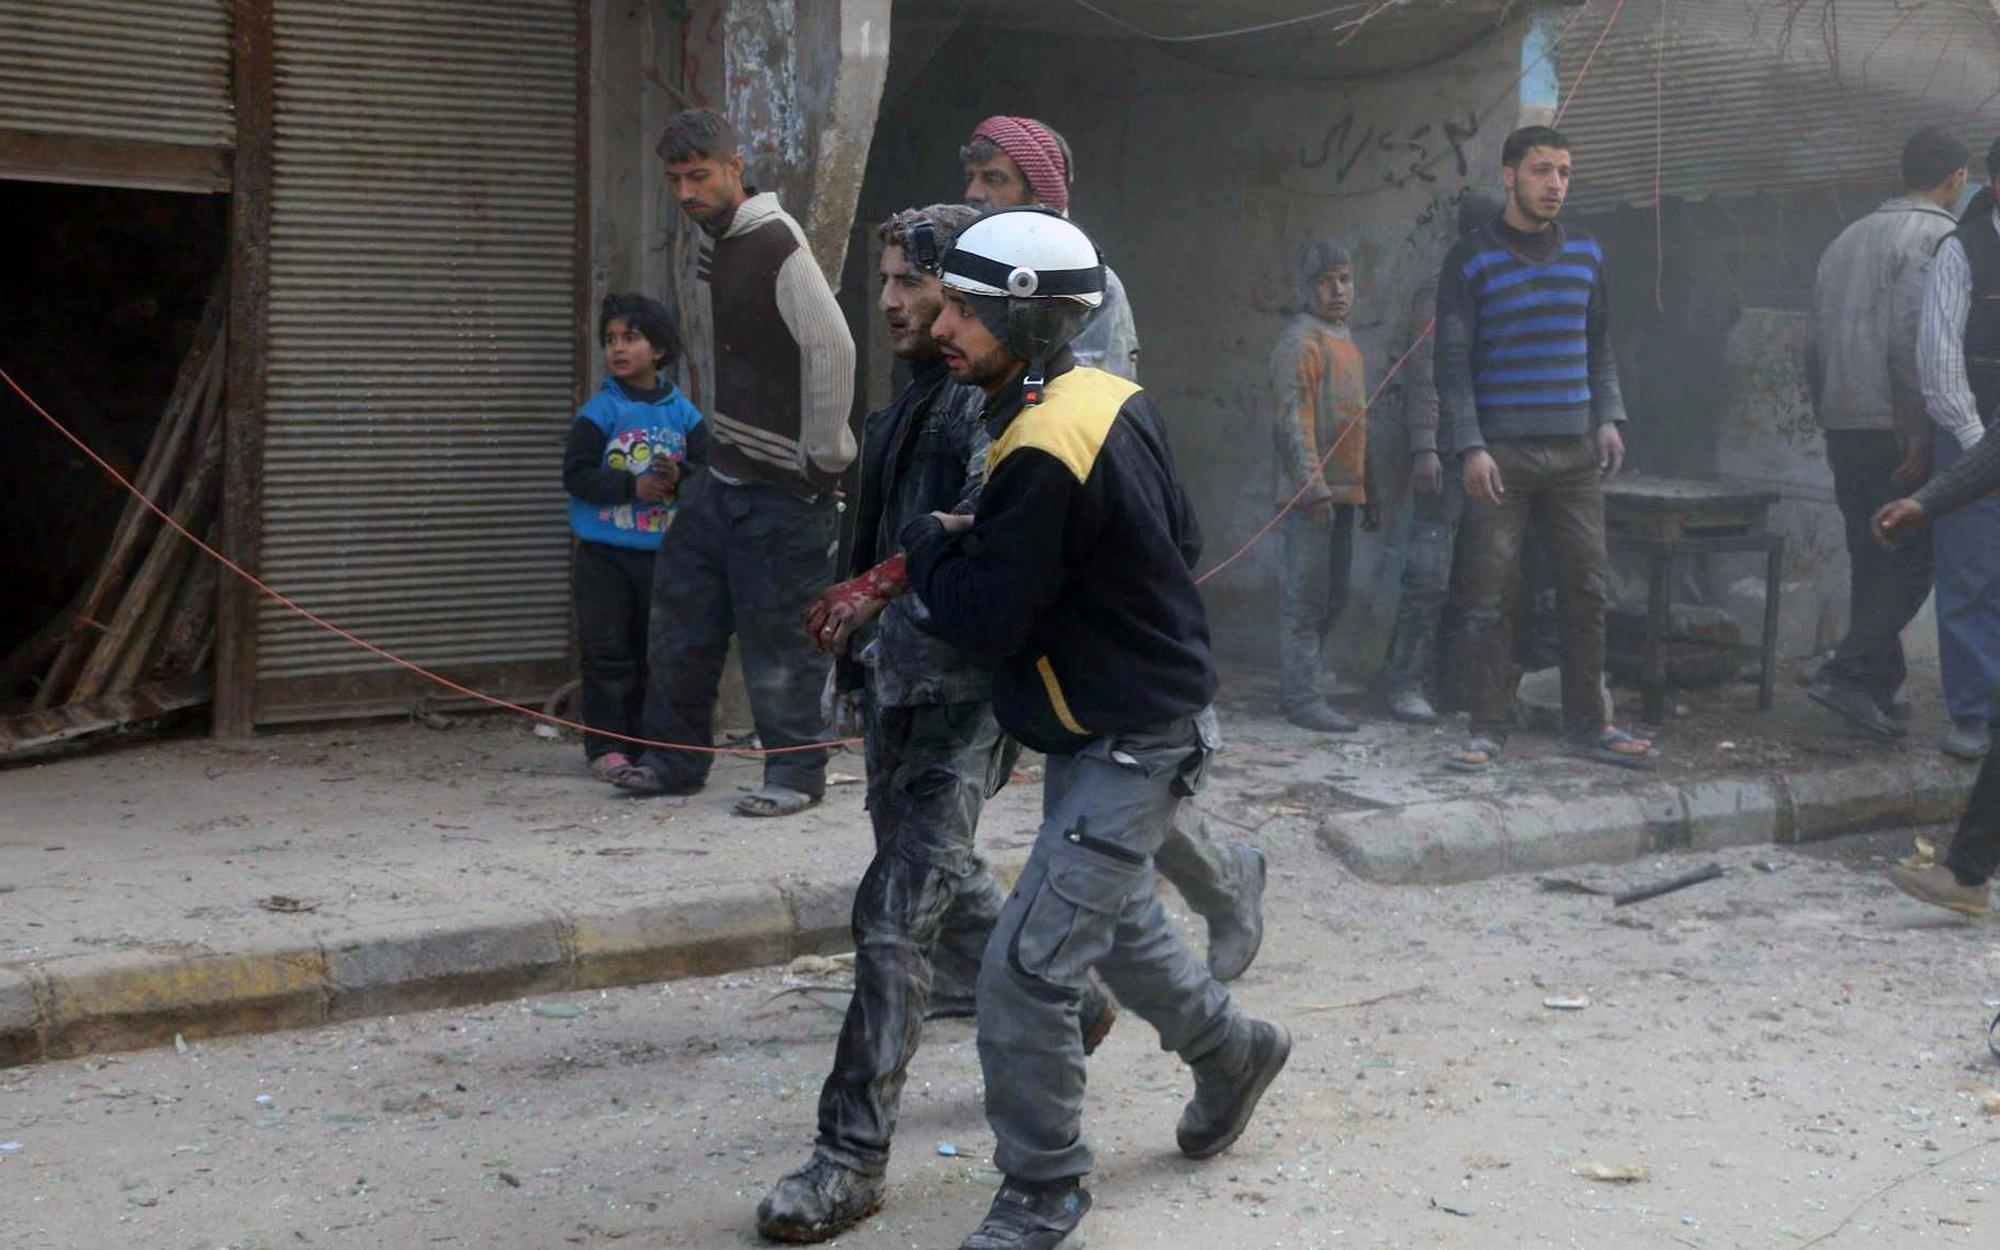 This photo provided by the Syrian Civil Defense White Helmets, which has been authenticated based on its contents and other AP reporting, shows a civil defense worker helping a wounded man after airstrikes hit a rebel-held suburb near Damascus, Syria, Thursday, Feb. 8, 2018. Syrian rescue workers and activists say the death toll from ongoing government strikes on the opposition-held region near the capital Damascus has risen to at least 35. (Syrian Civil Defense White Helmets via AP)